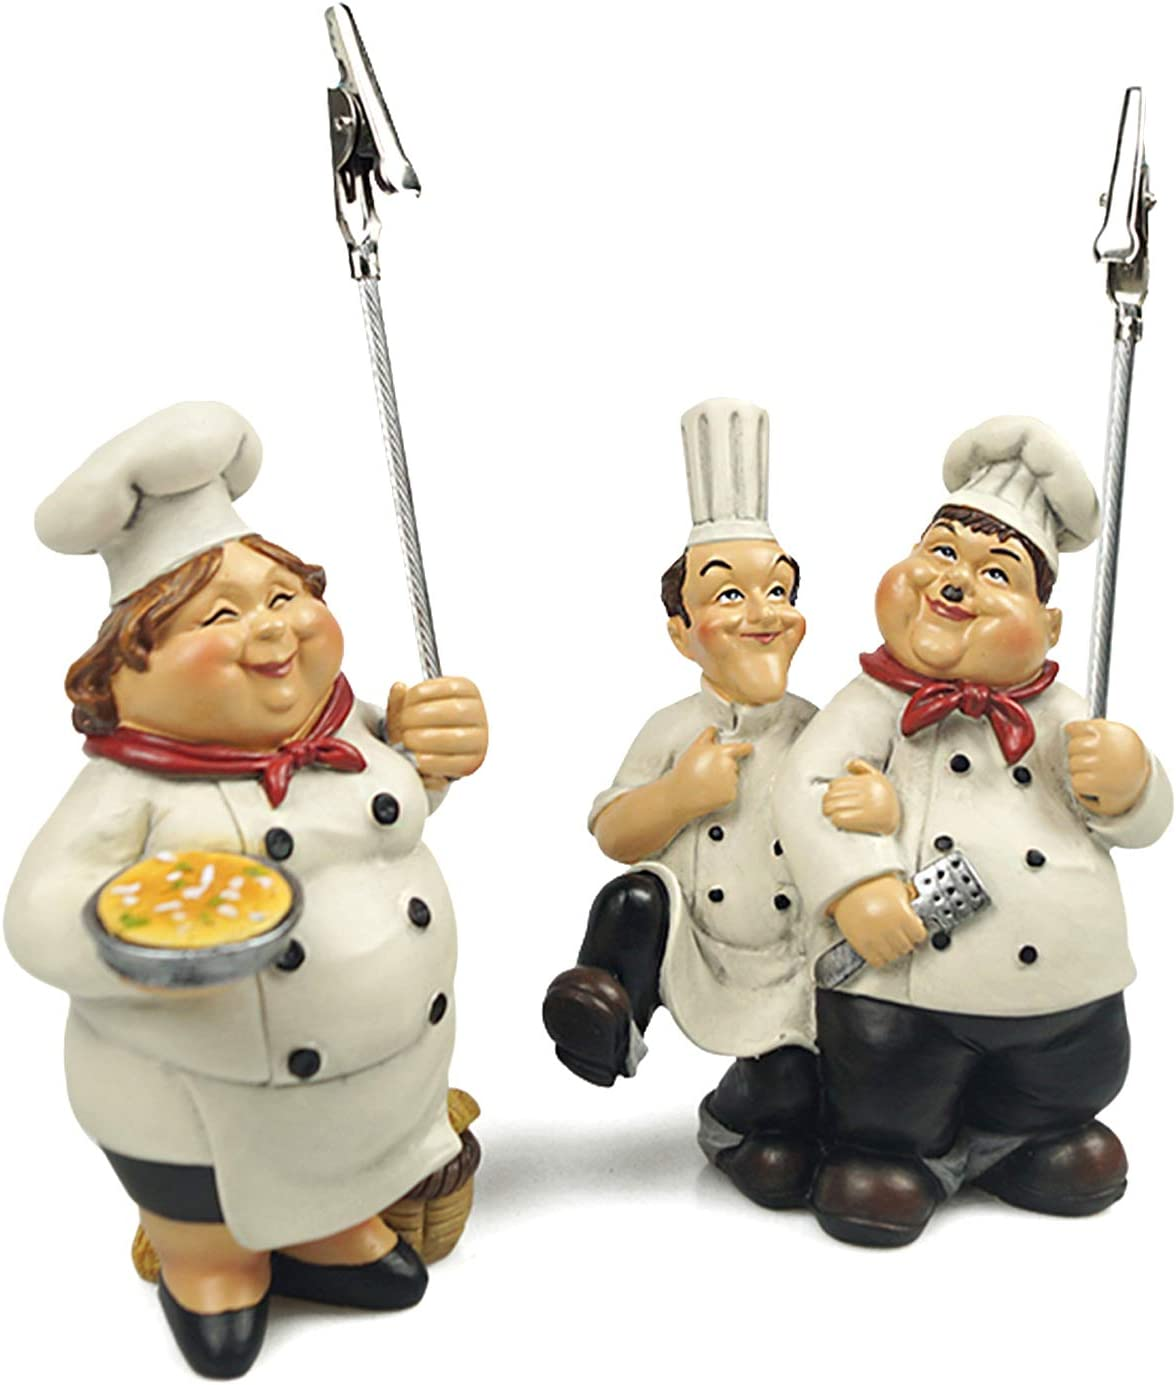 """upra Decorative Chef/Baker Figurines Kitchen Decor with Card Holders, A Pair of Christmas Ornament French Chef Master Figurine, Home Kitchen Restaurant Bakery Decor 5.5"""""""